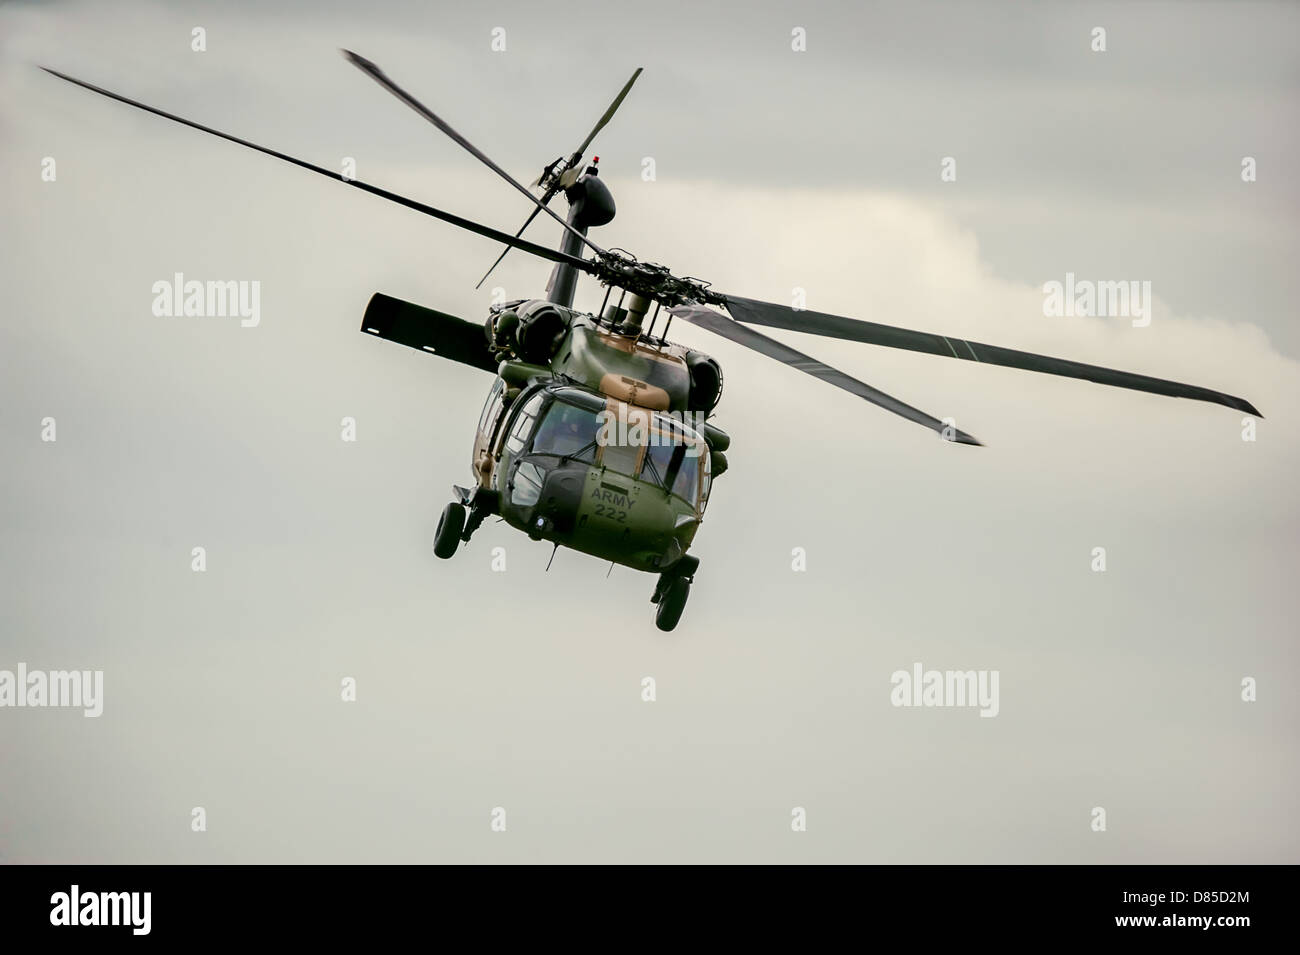 A menacing looking military helicopter goes through its paces at the Avalon Air Show in Australia. - Stock Image